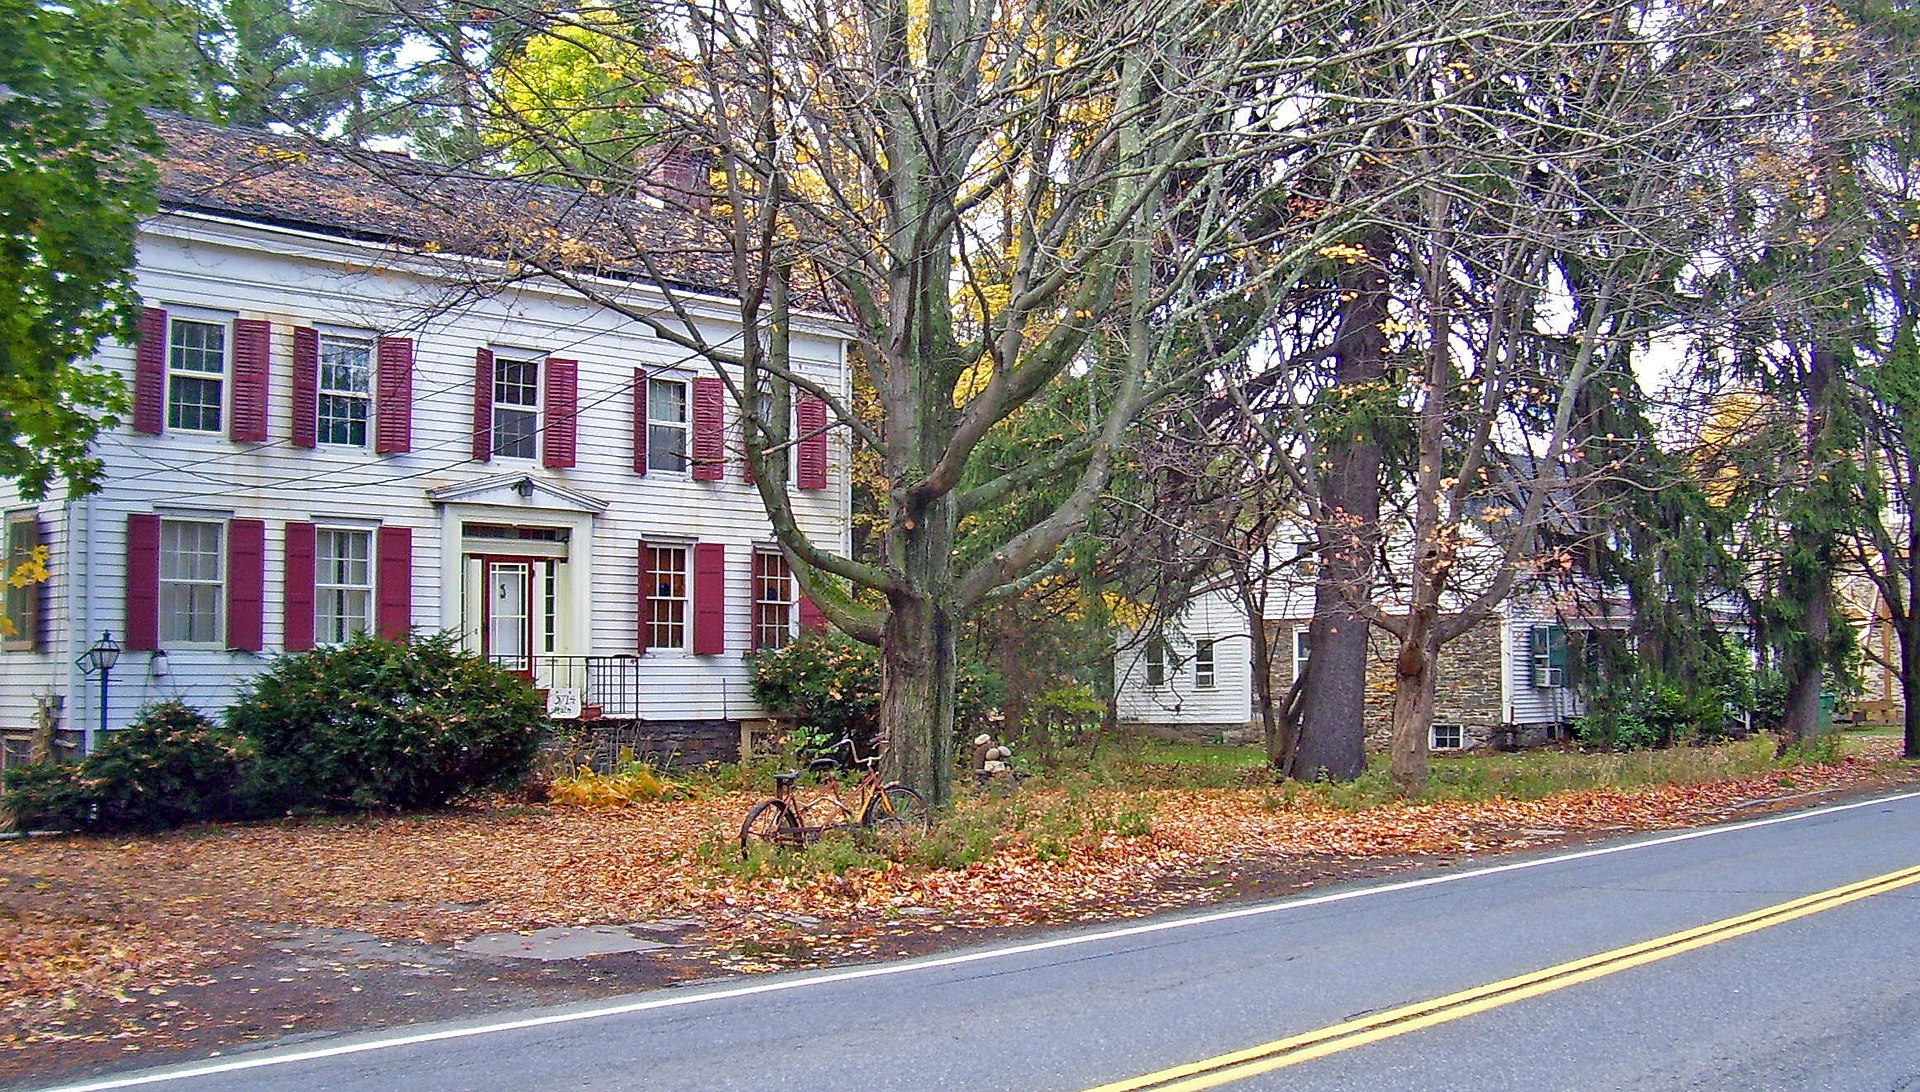 Stone Homes For Sale In Upstate New York